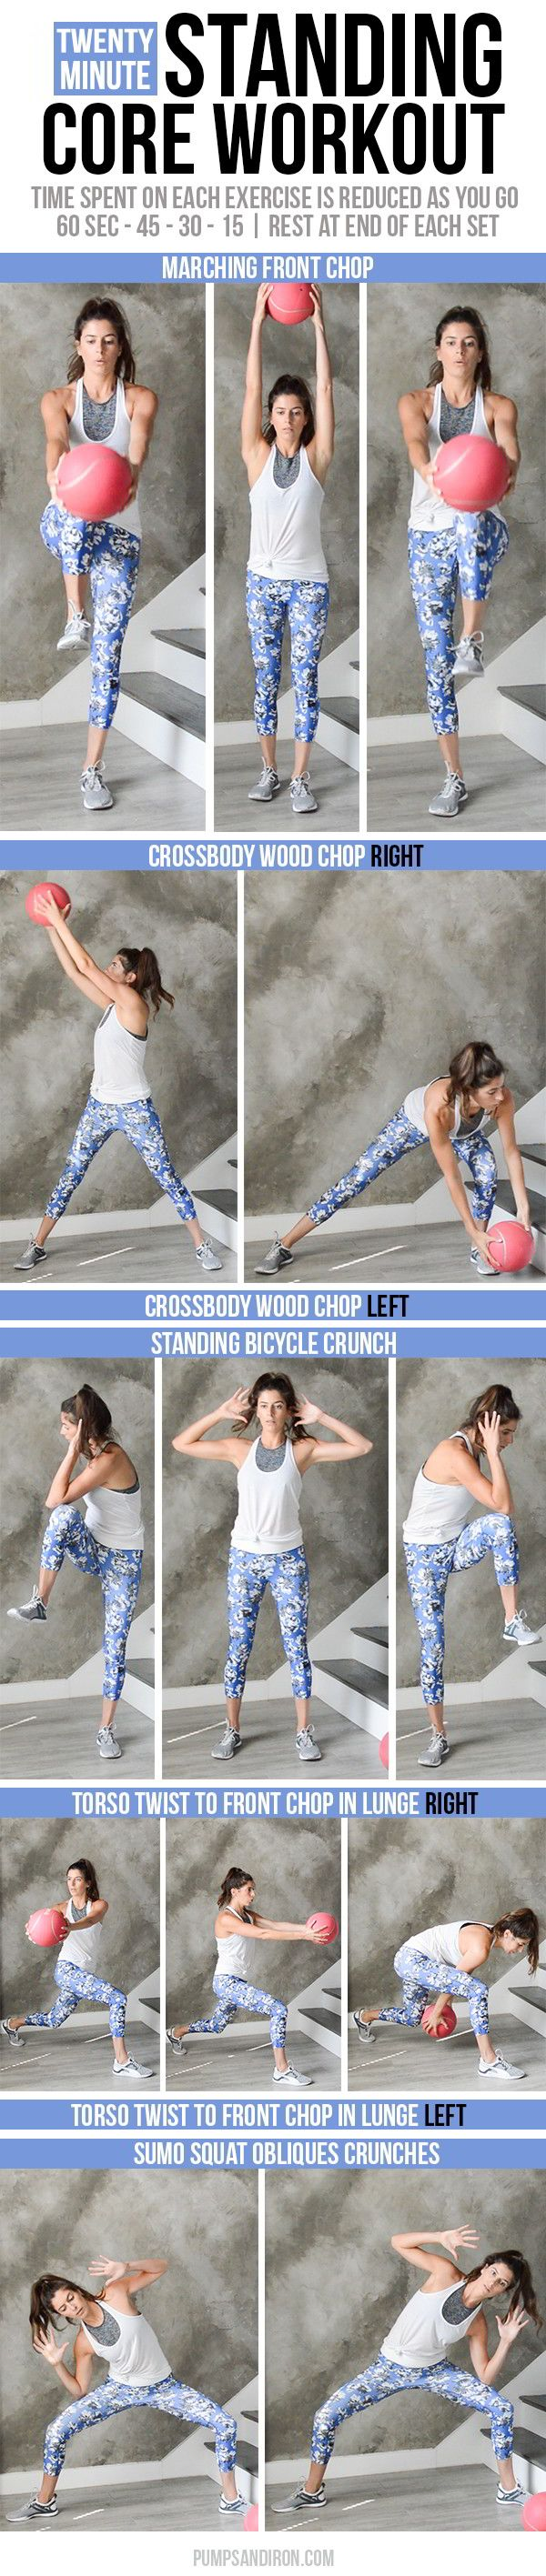 Standing Core Workout